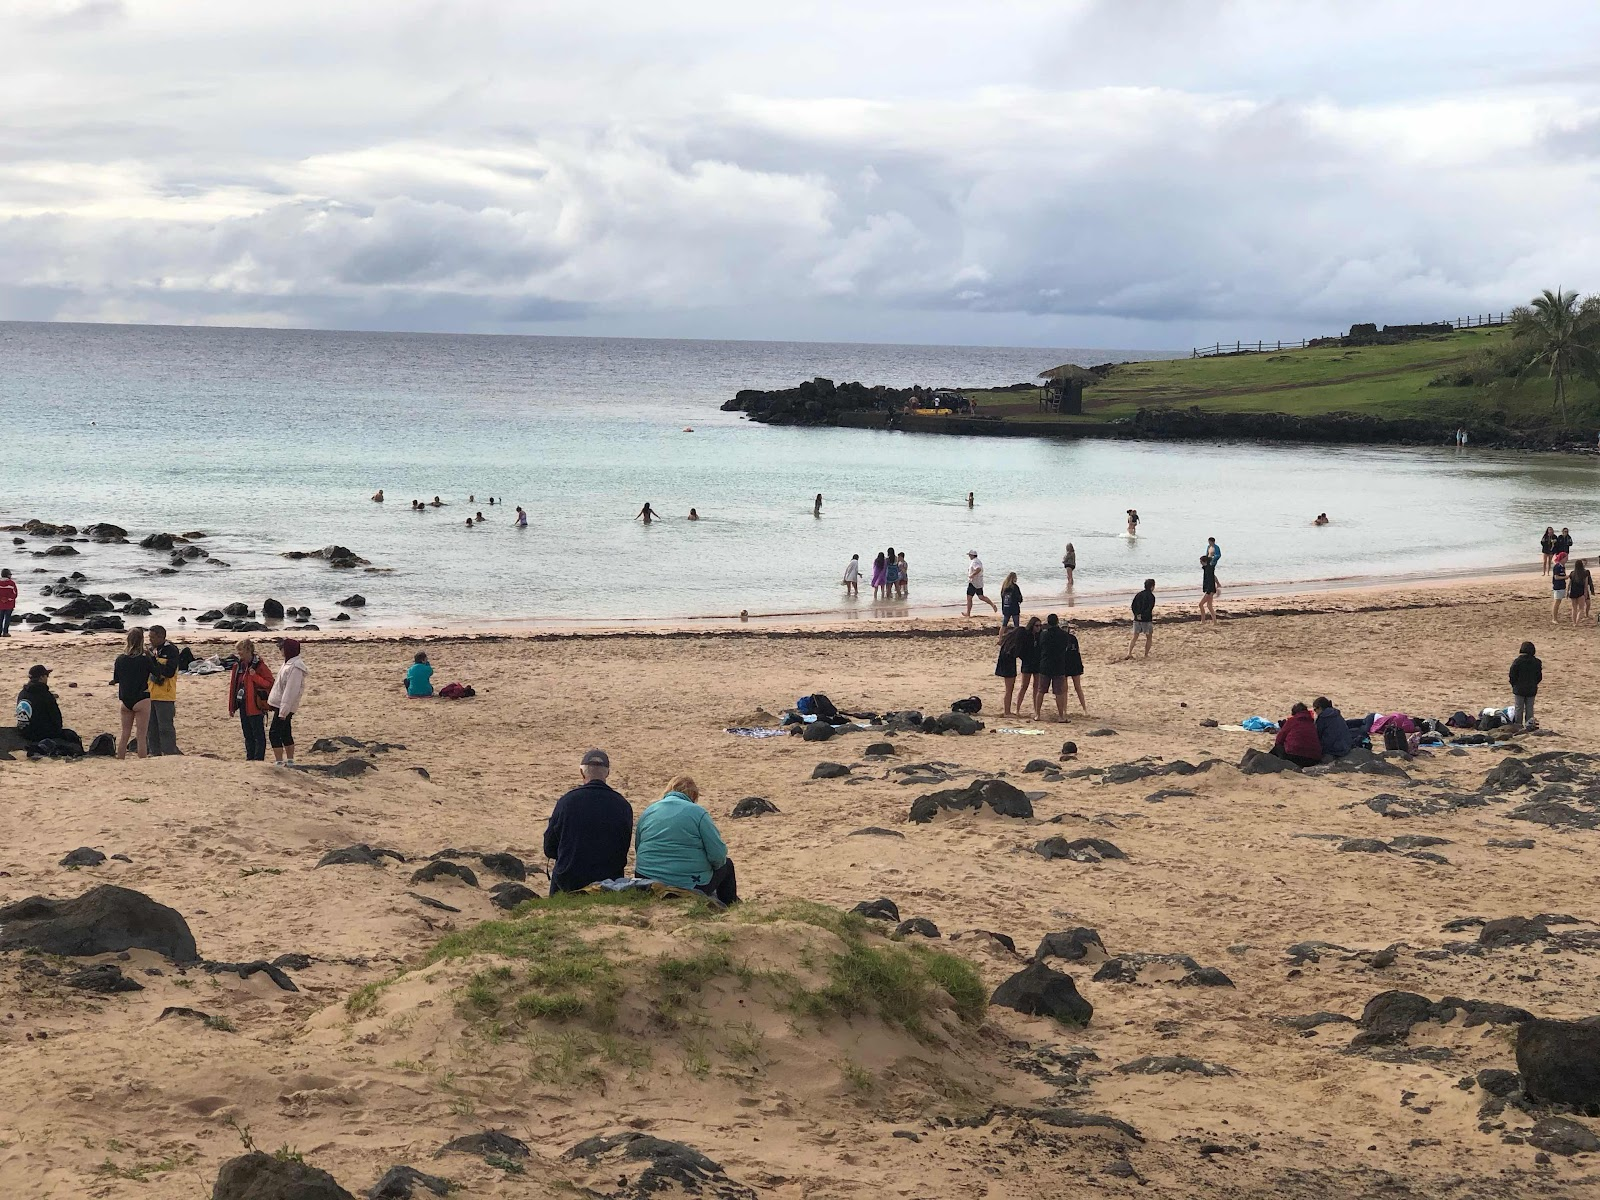 it's winter in Rapa Nui, but the swimmers see a great time at the beach